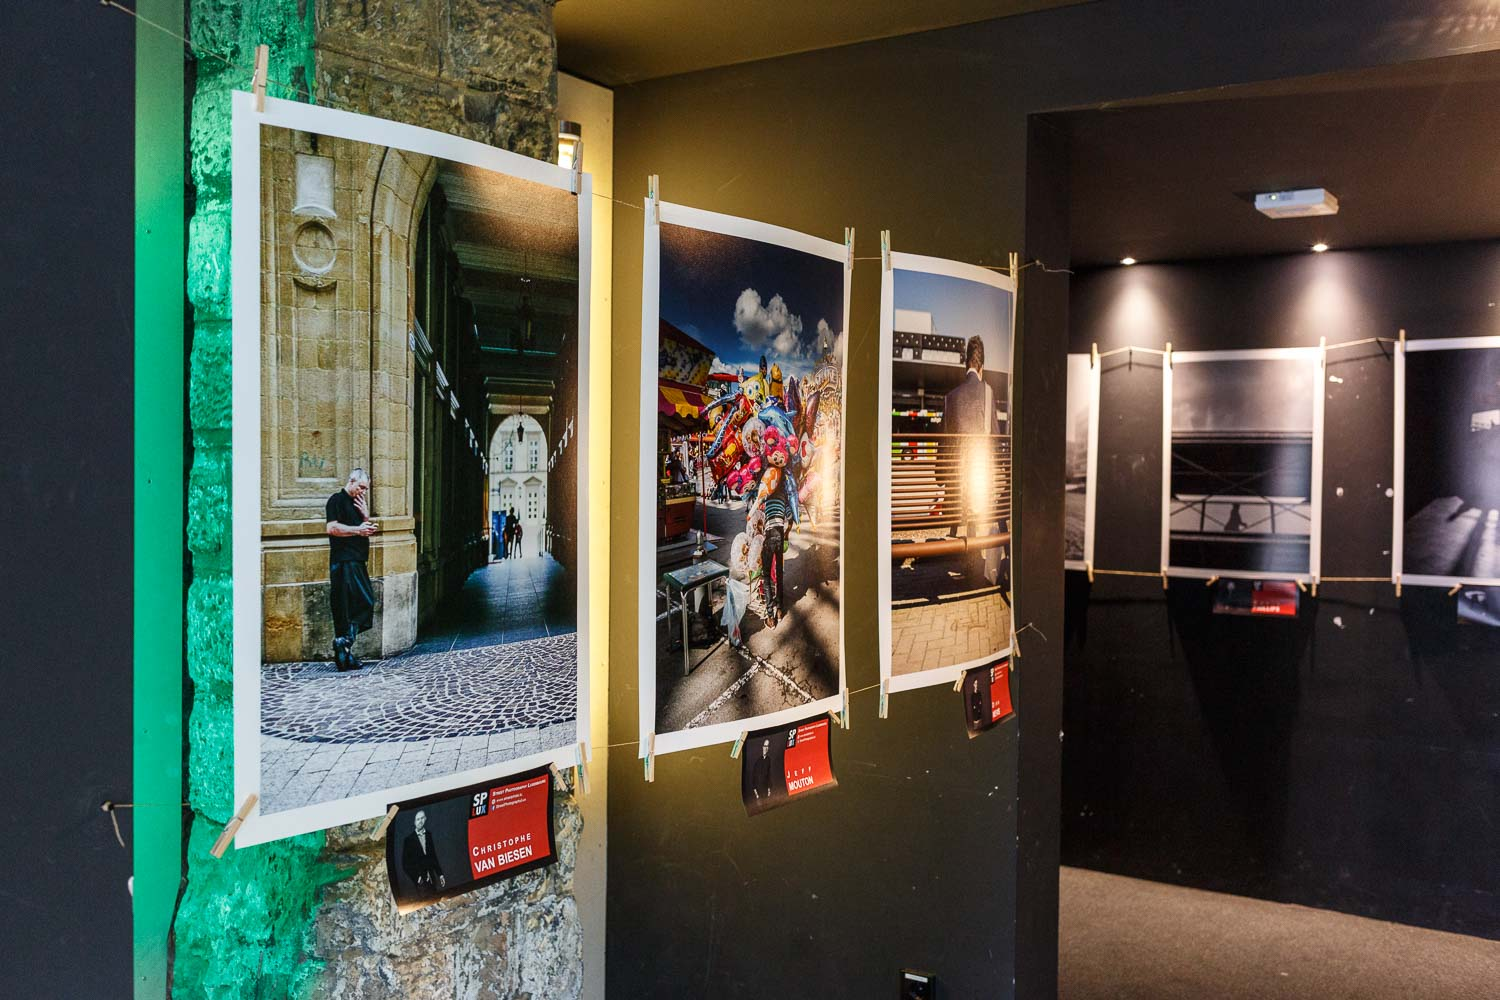 Exhibition at the Luxembourg Street Photography Festival 2017 at the Rotondes